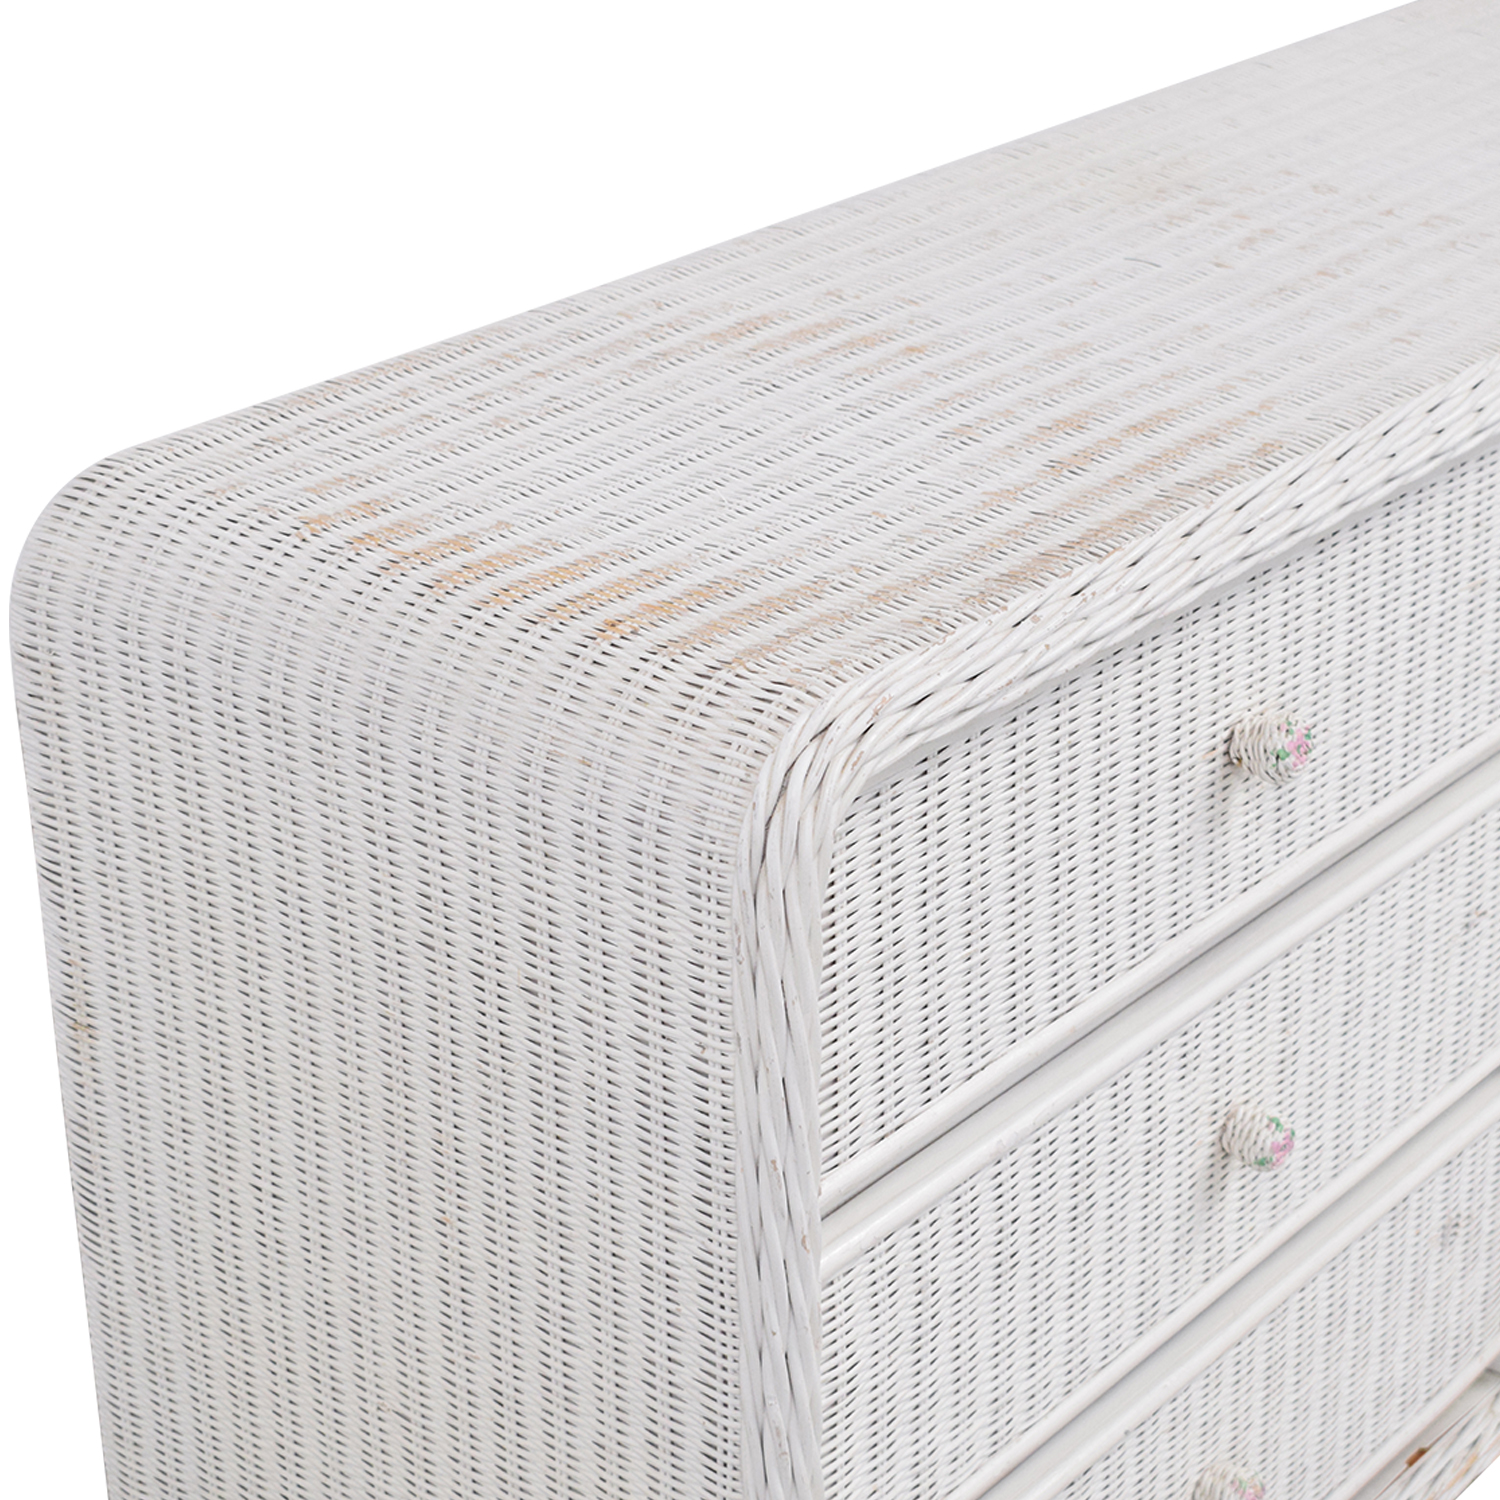 White Wicker Chest of Drawers second hand